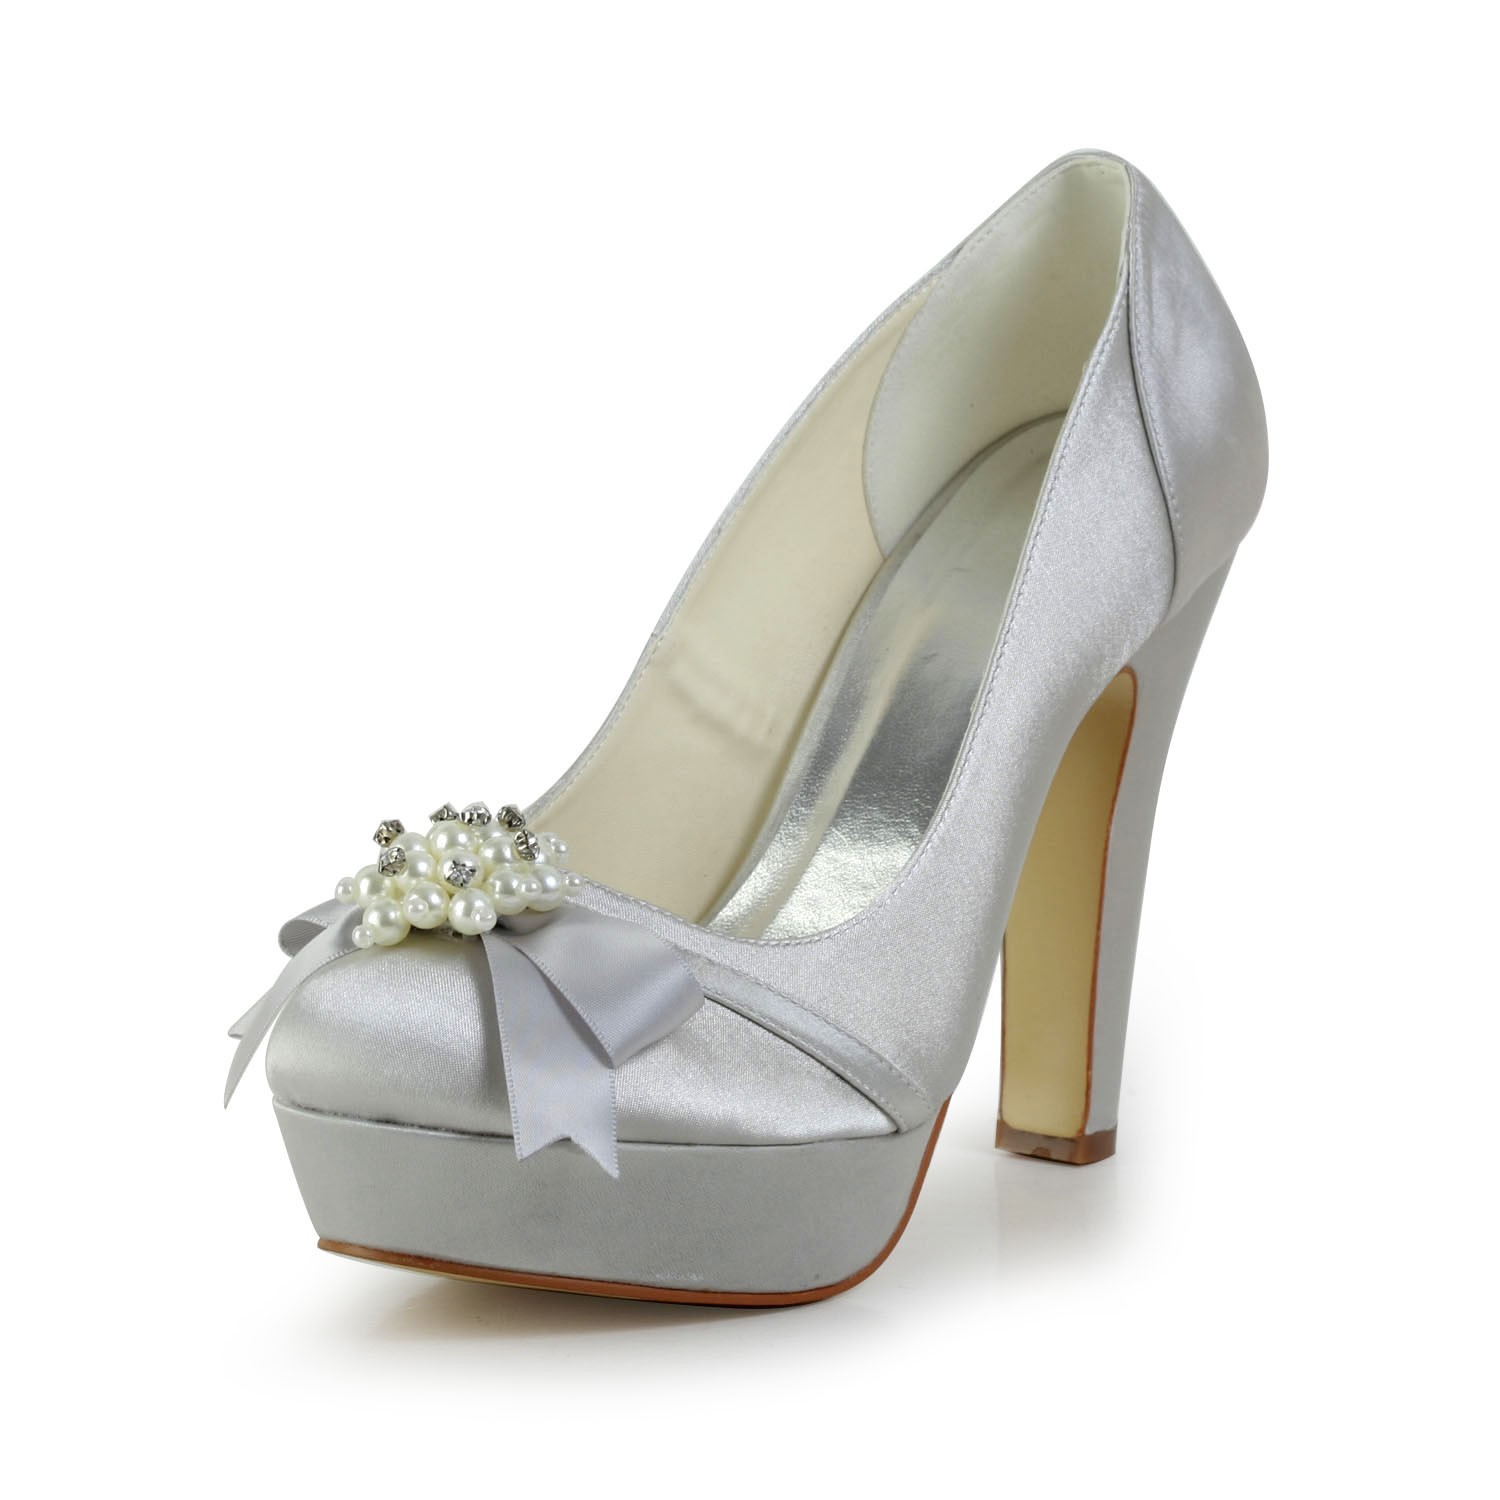 45858ee2bf3 Women s Satin Chunky Heel Closed Toe Platform Silver Wedding Shoes With  Bowknot